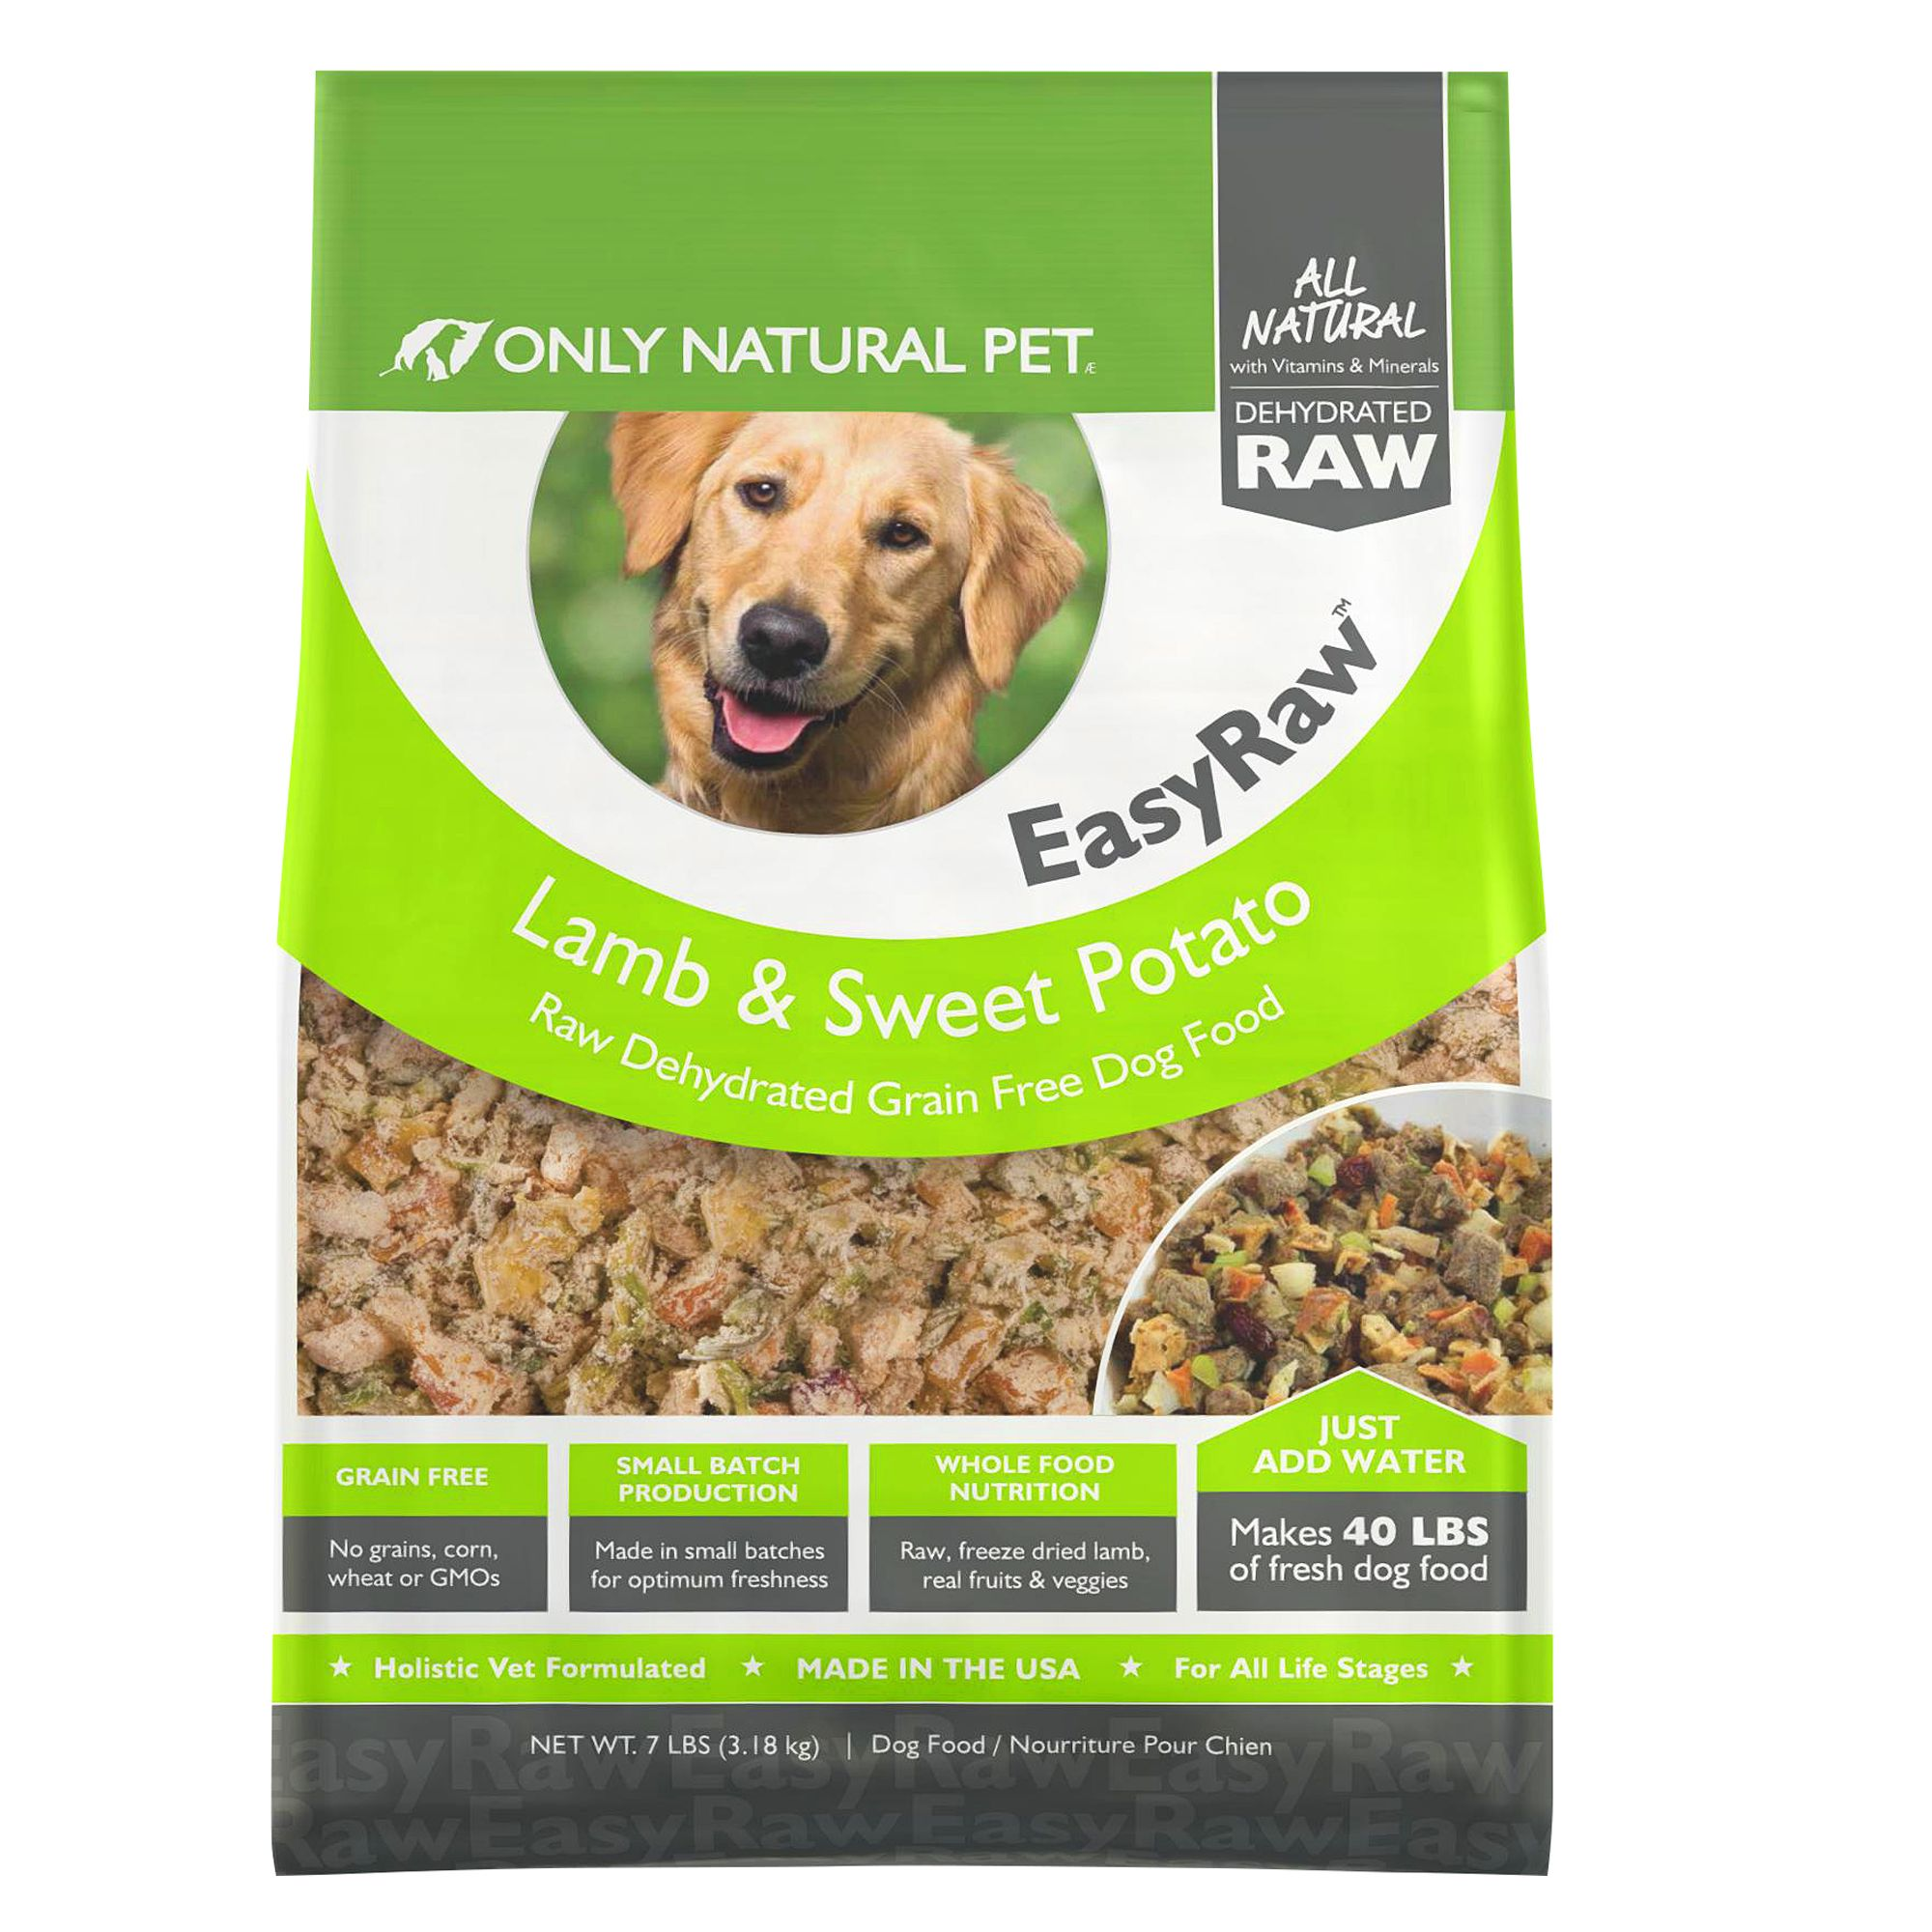 Only Natural Pet Dehydrated Raw Dog Food